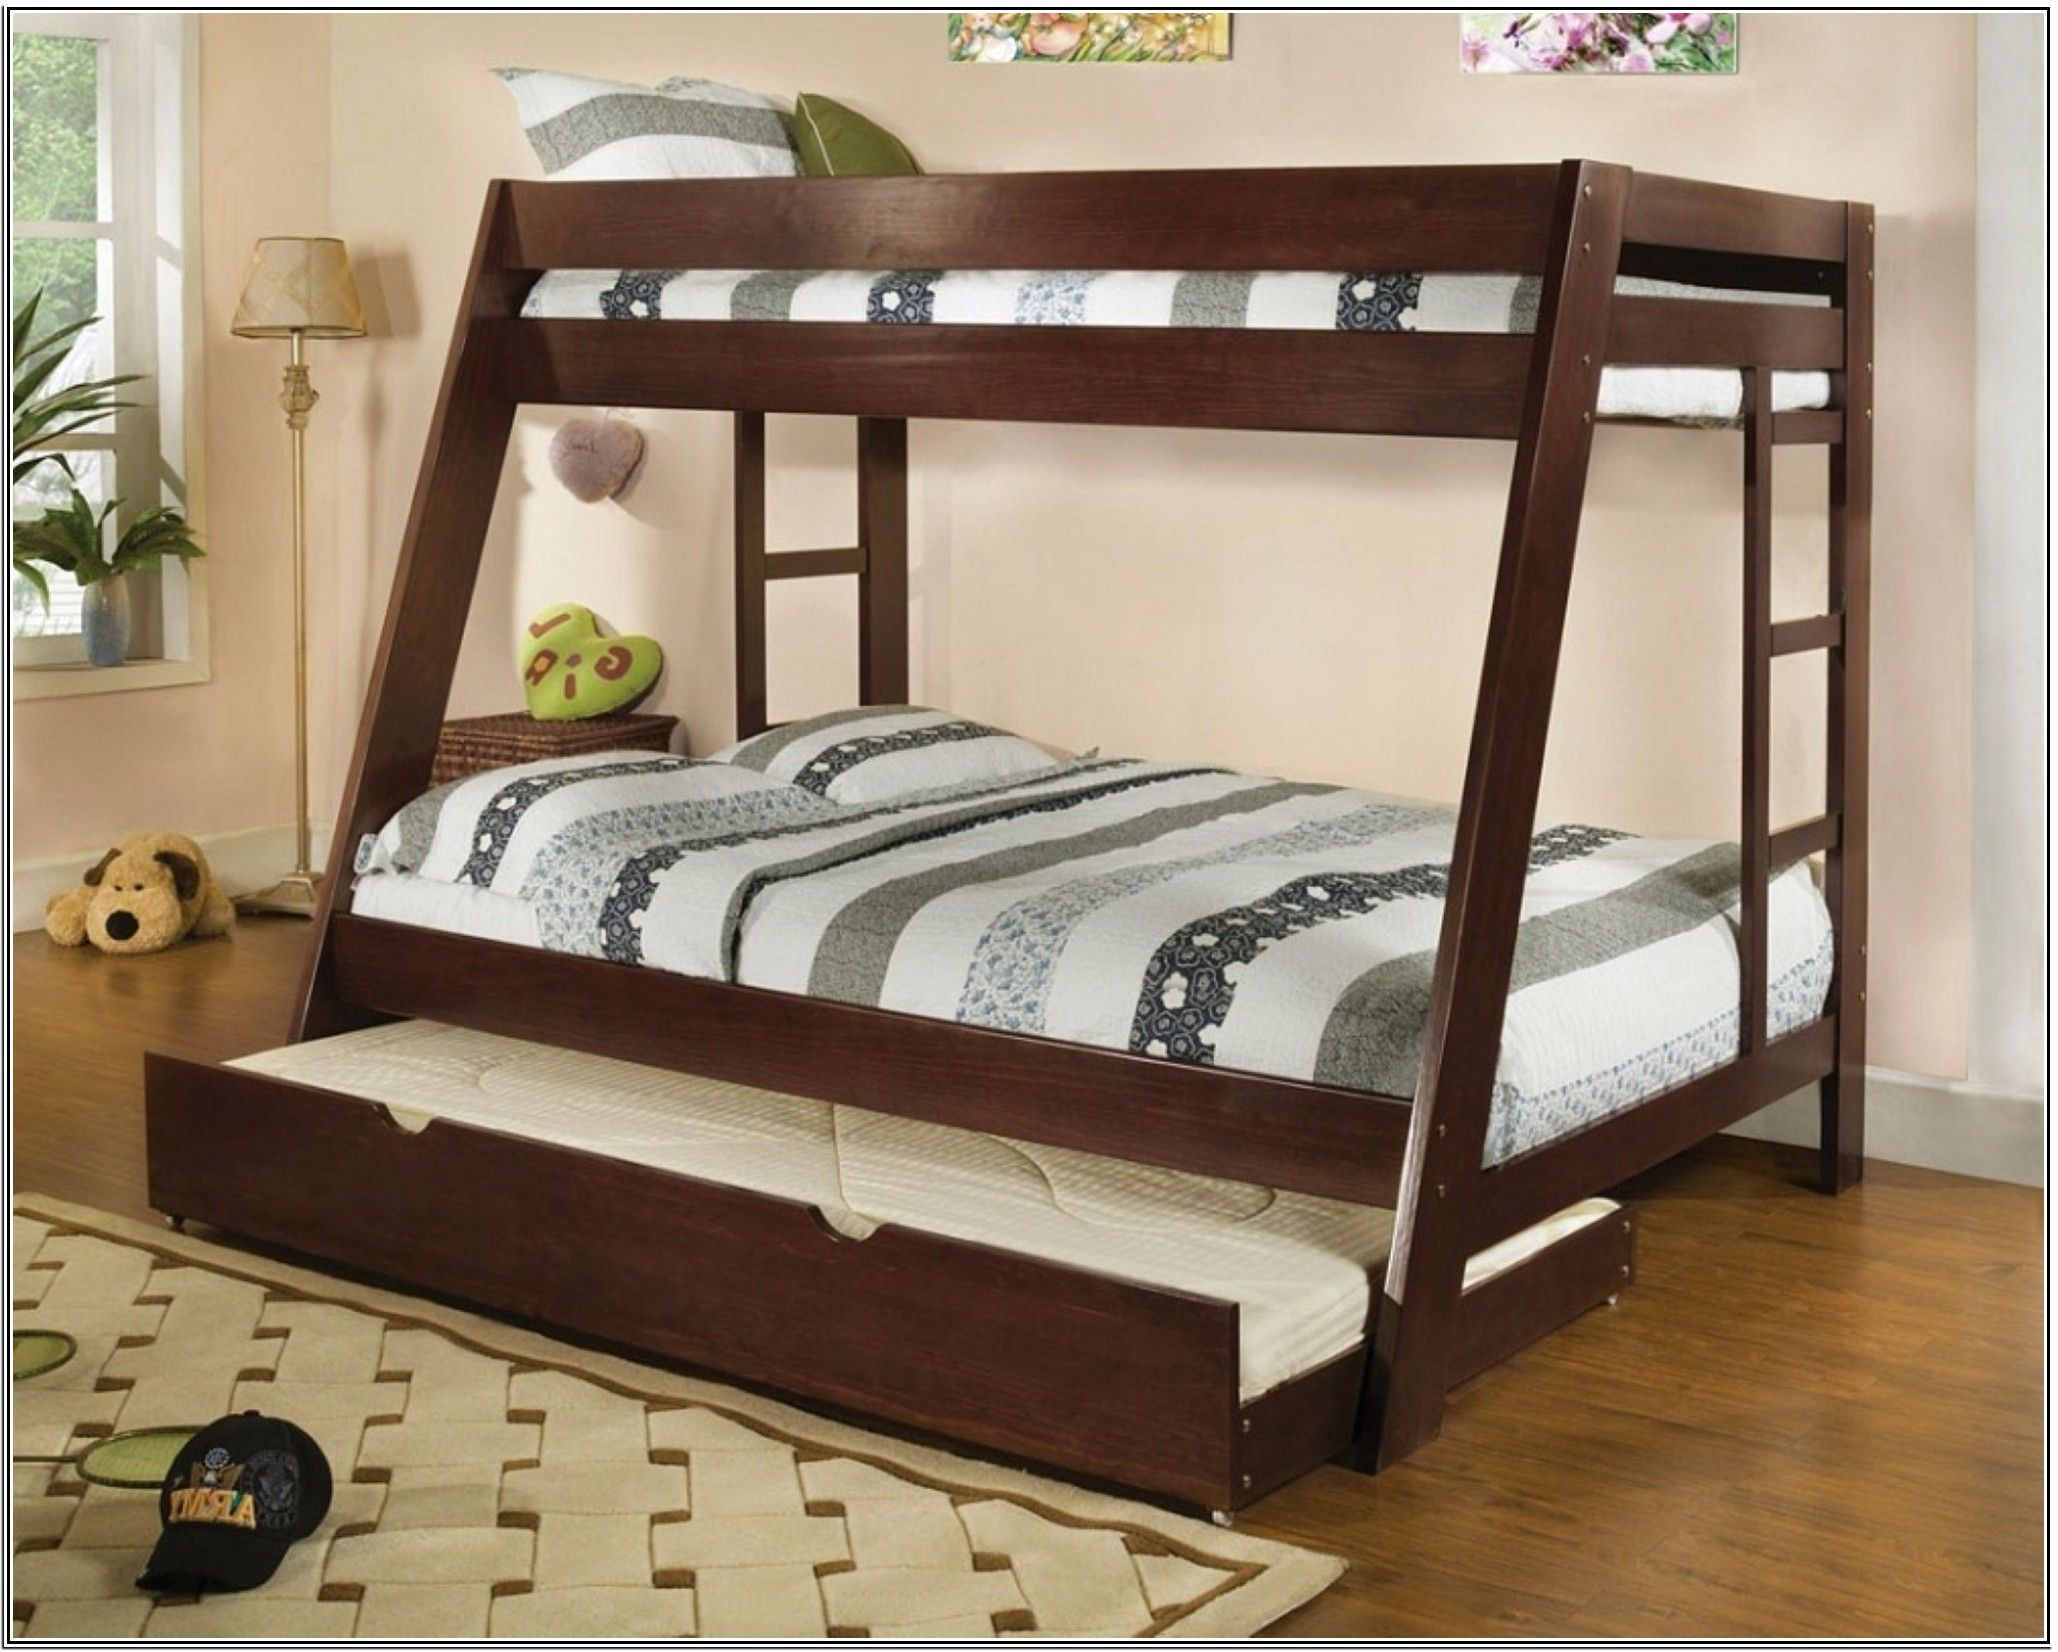 Wood Double Deck Bed Designs For Boys In Navy Blue Bedroom Home Of And Images